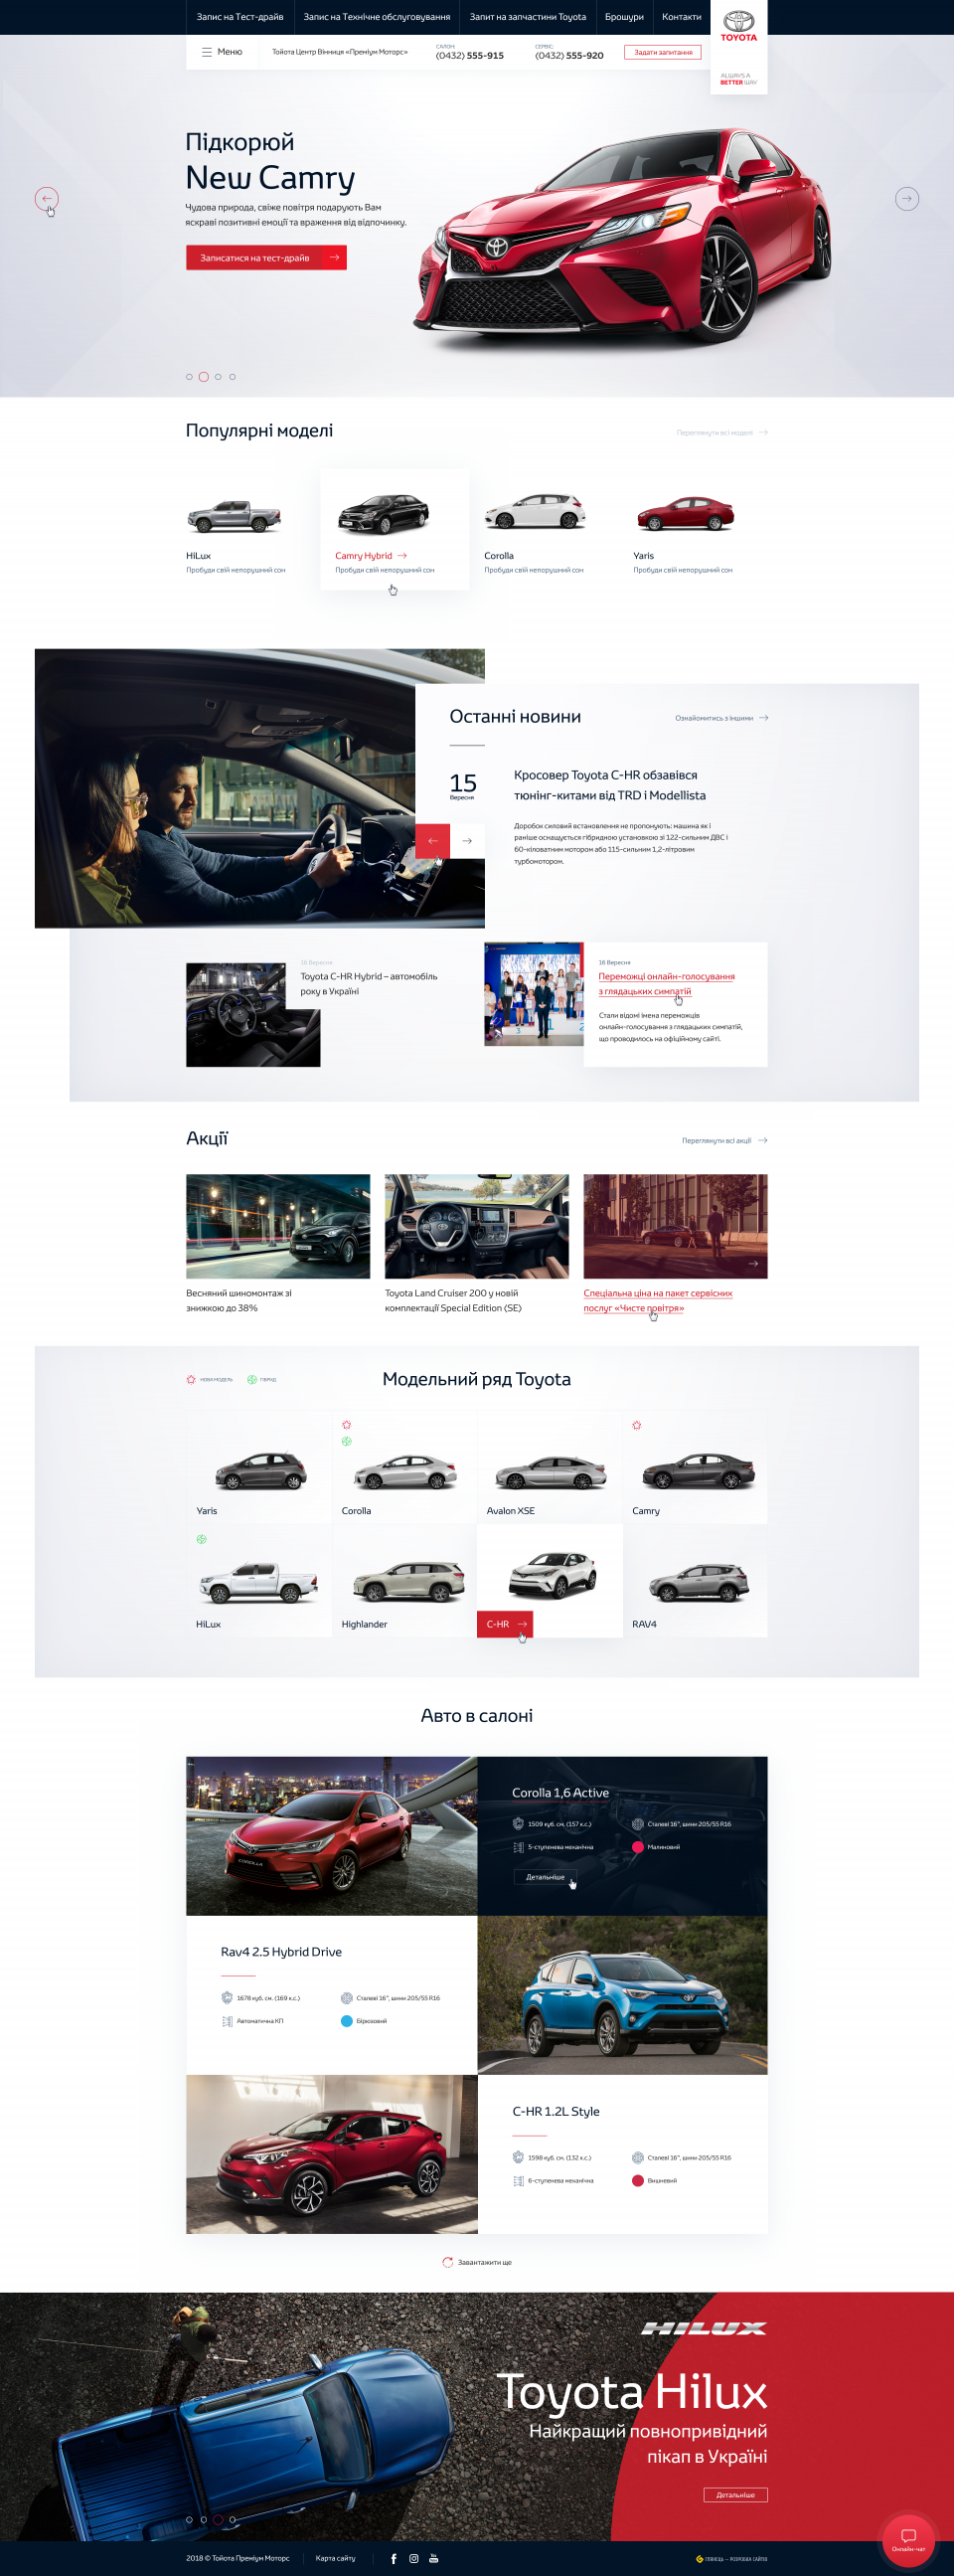 home page design — Corporate website for the Toyota dealer Toyota Premium Center Vinnytsia_0